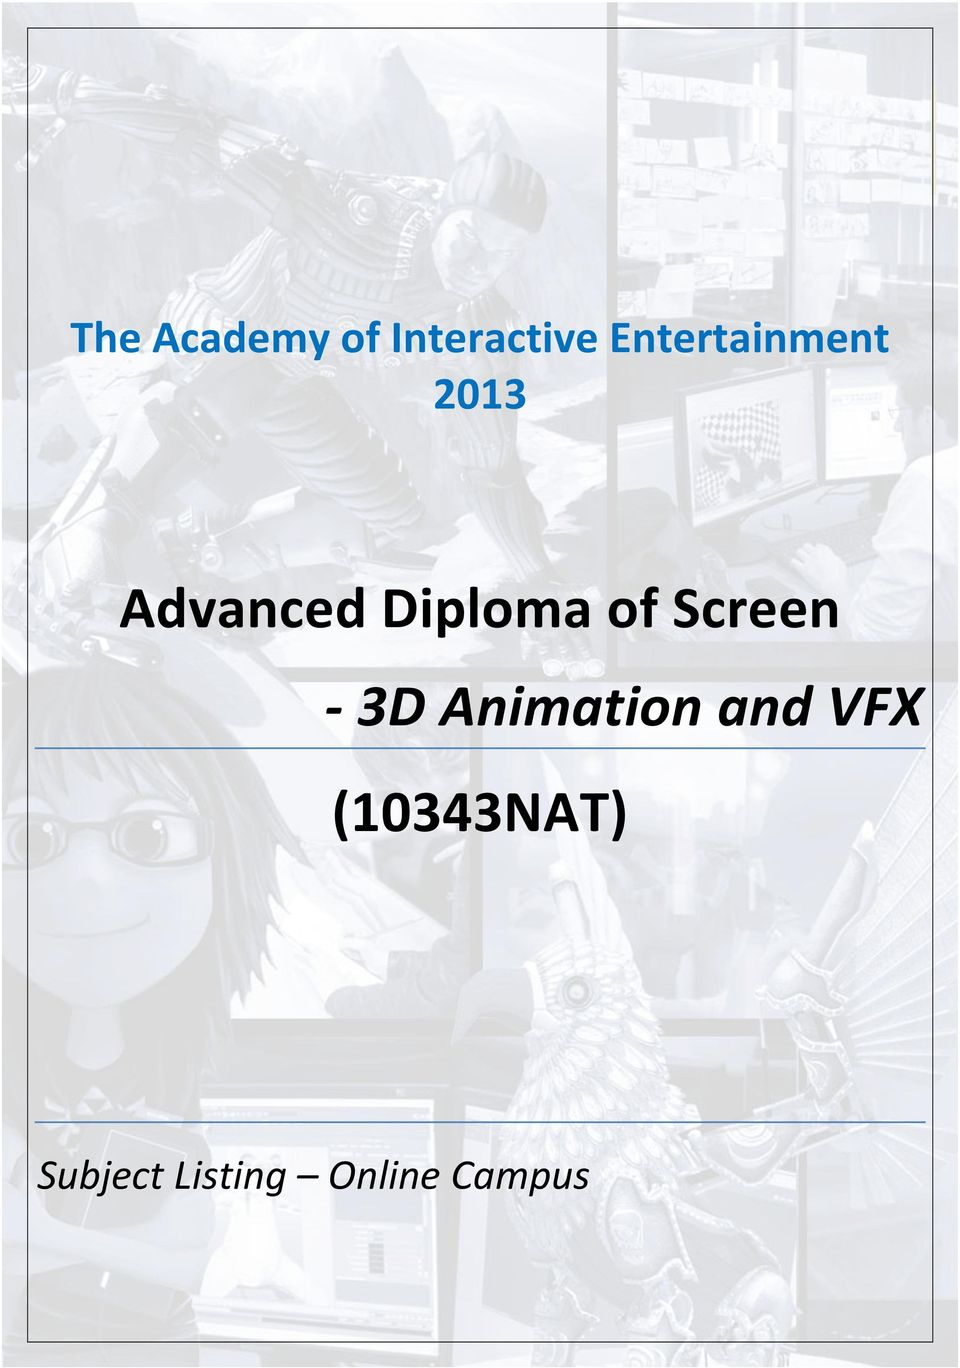 of Screen - 3D Animation and VFX